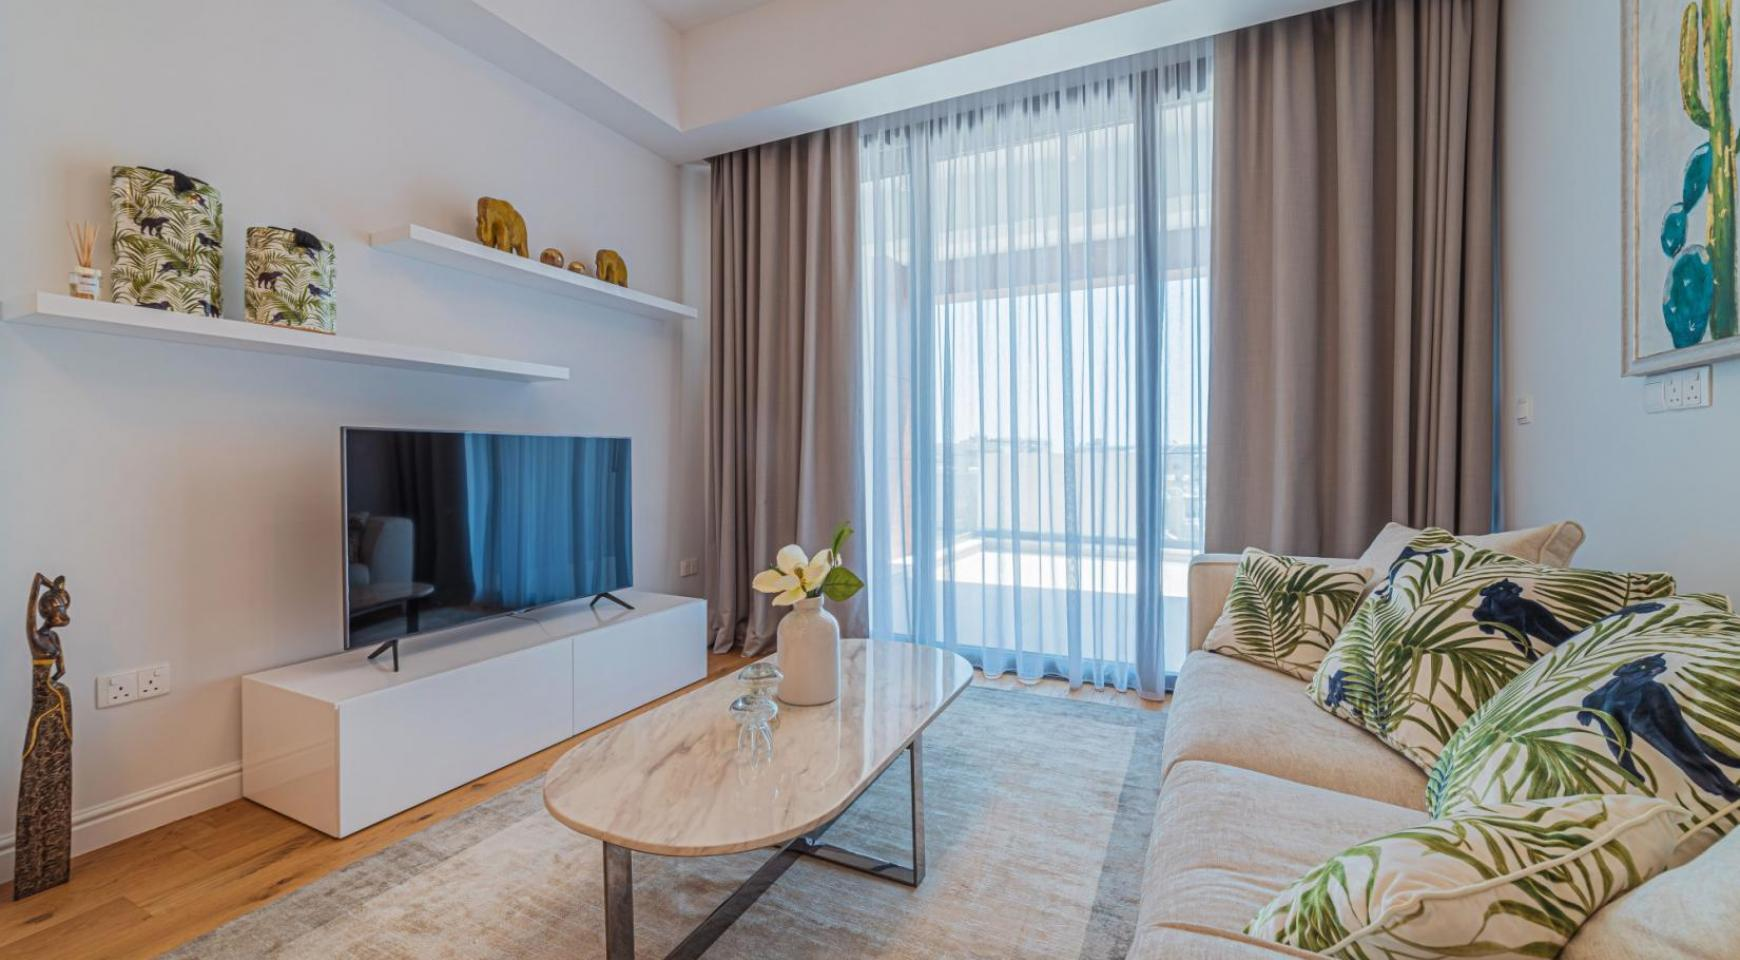 Hortensia Residence, Apt. 202. 2 Bedroom Apartment within a New Complex near the Sea  - 50